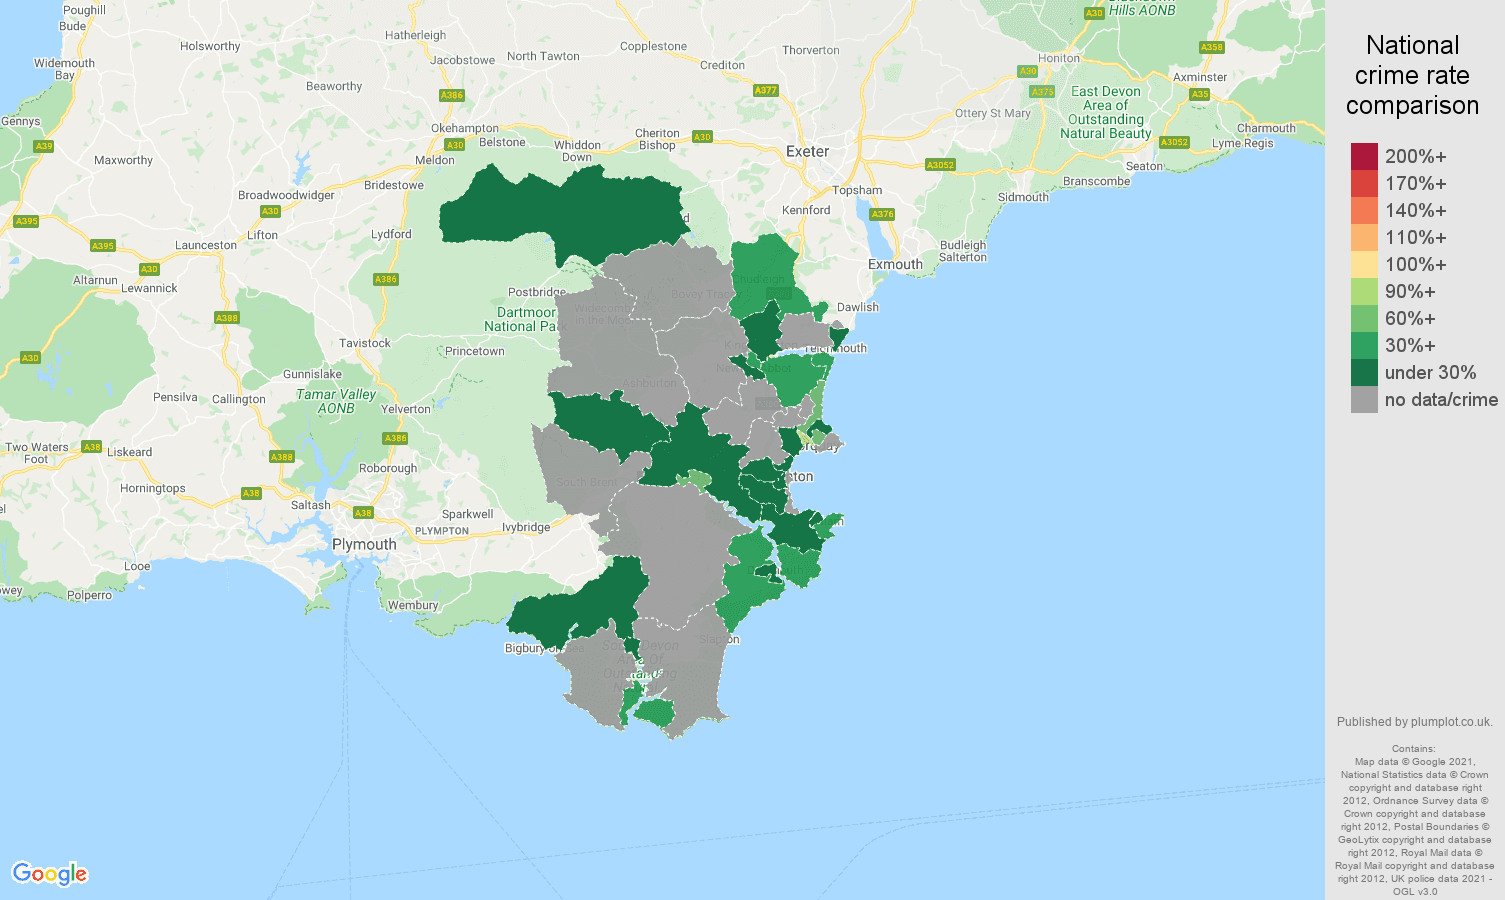 Torquay bicycle theft crime rate comparison map